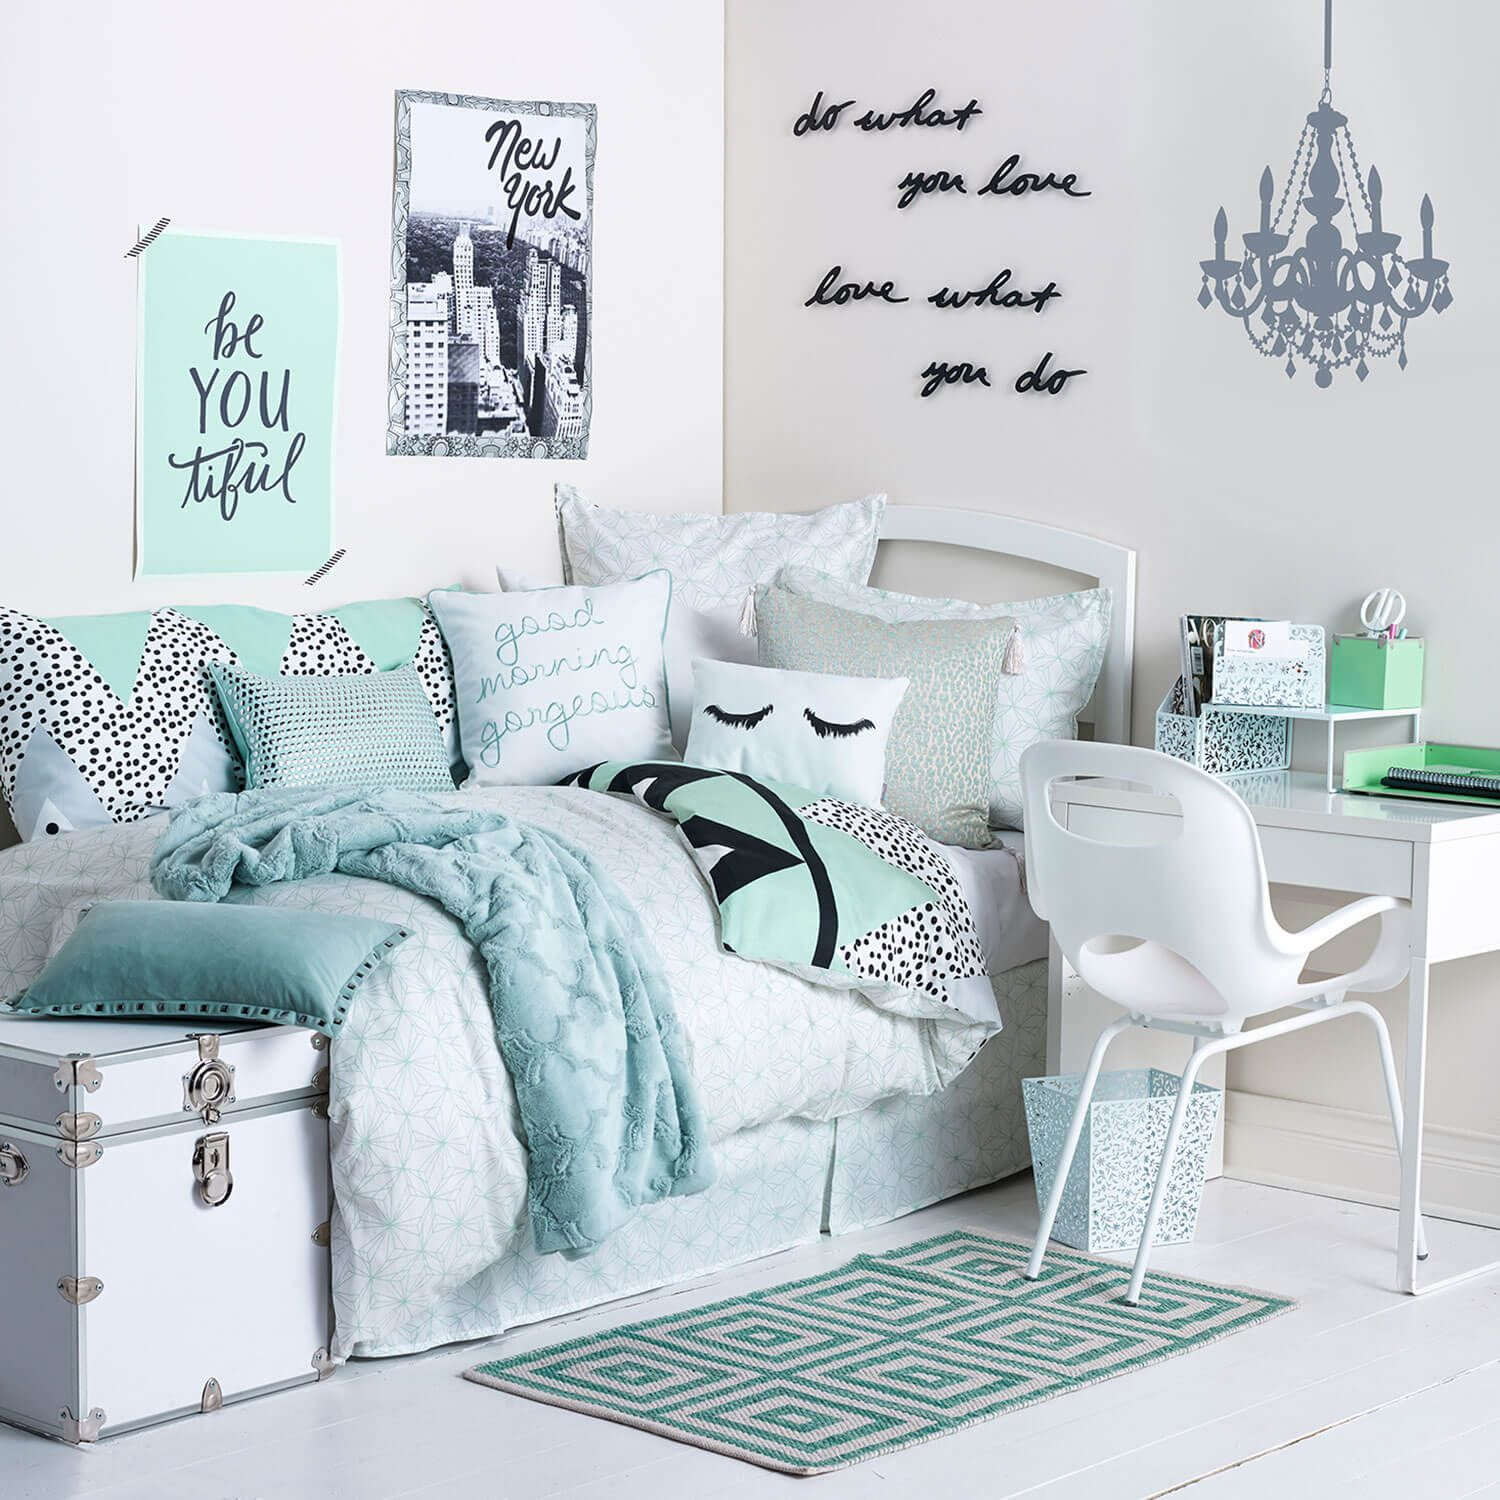 Teen Rooms For Girls Mesmerizing Uptown Girl Room  Available On Dormify  Dorm Bedding Loves Design Inspiration